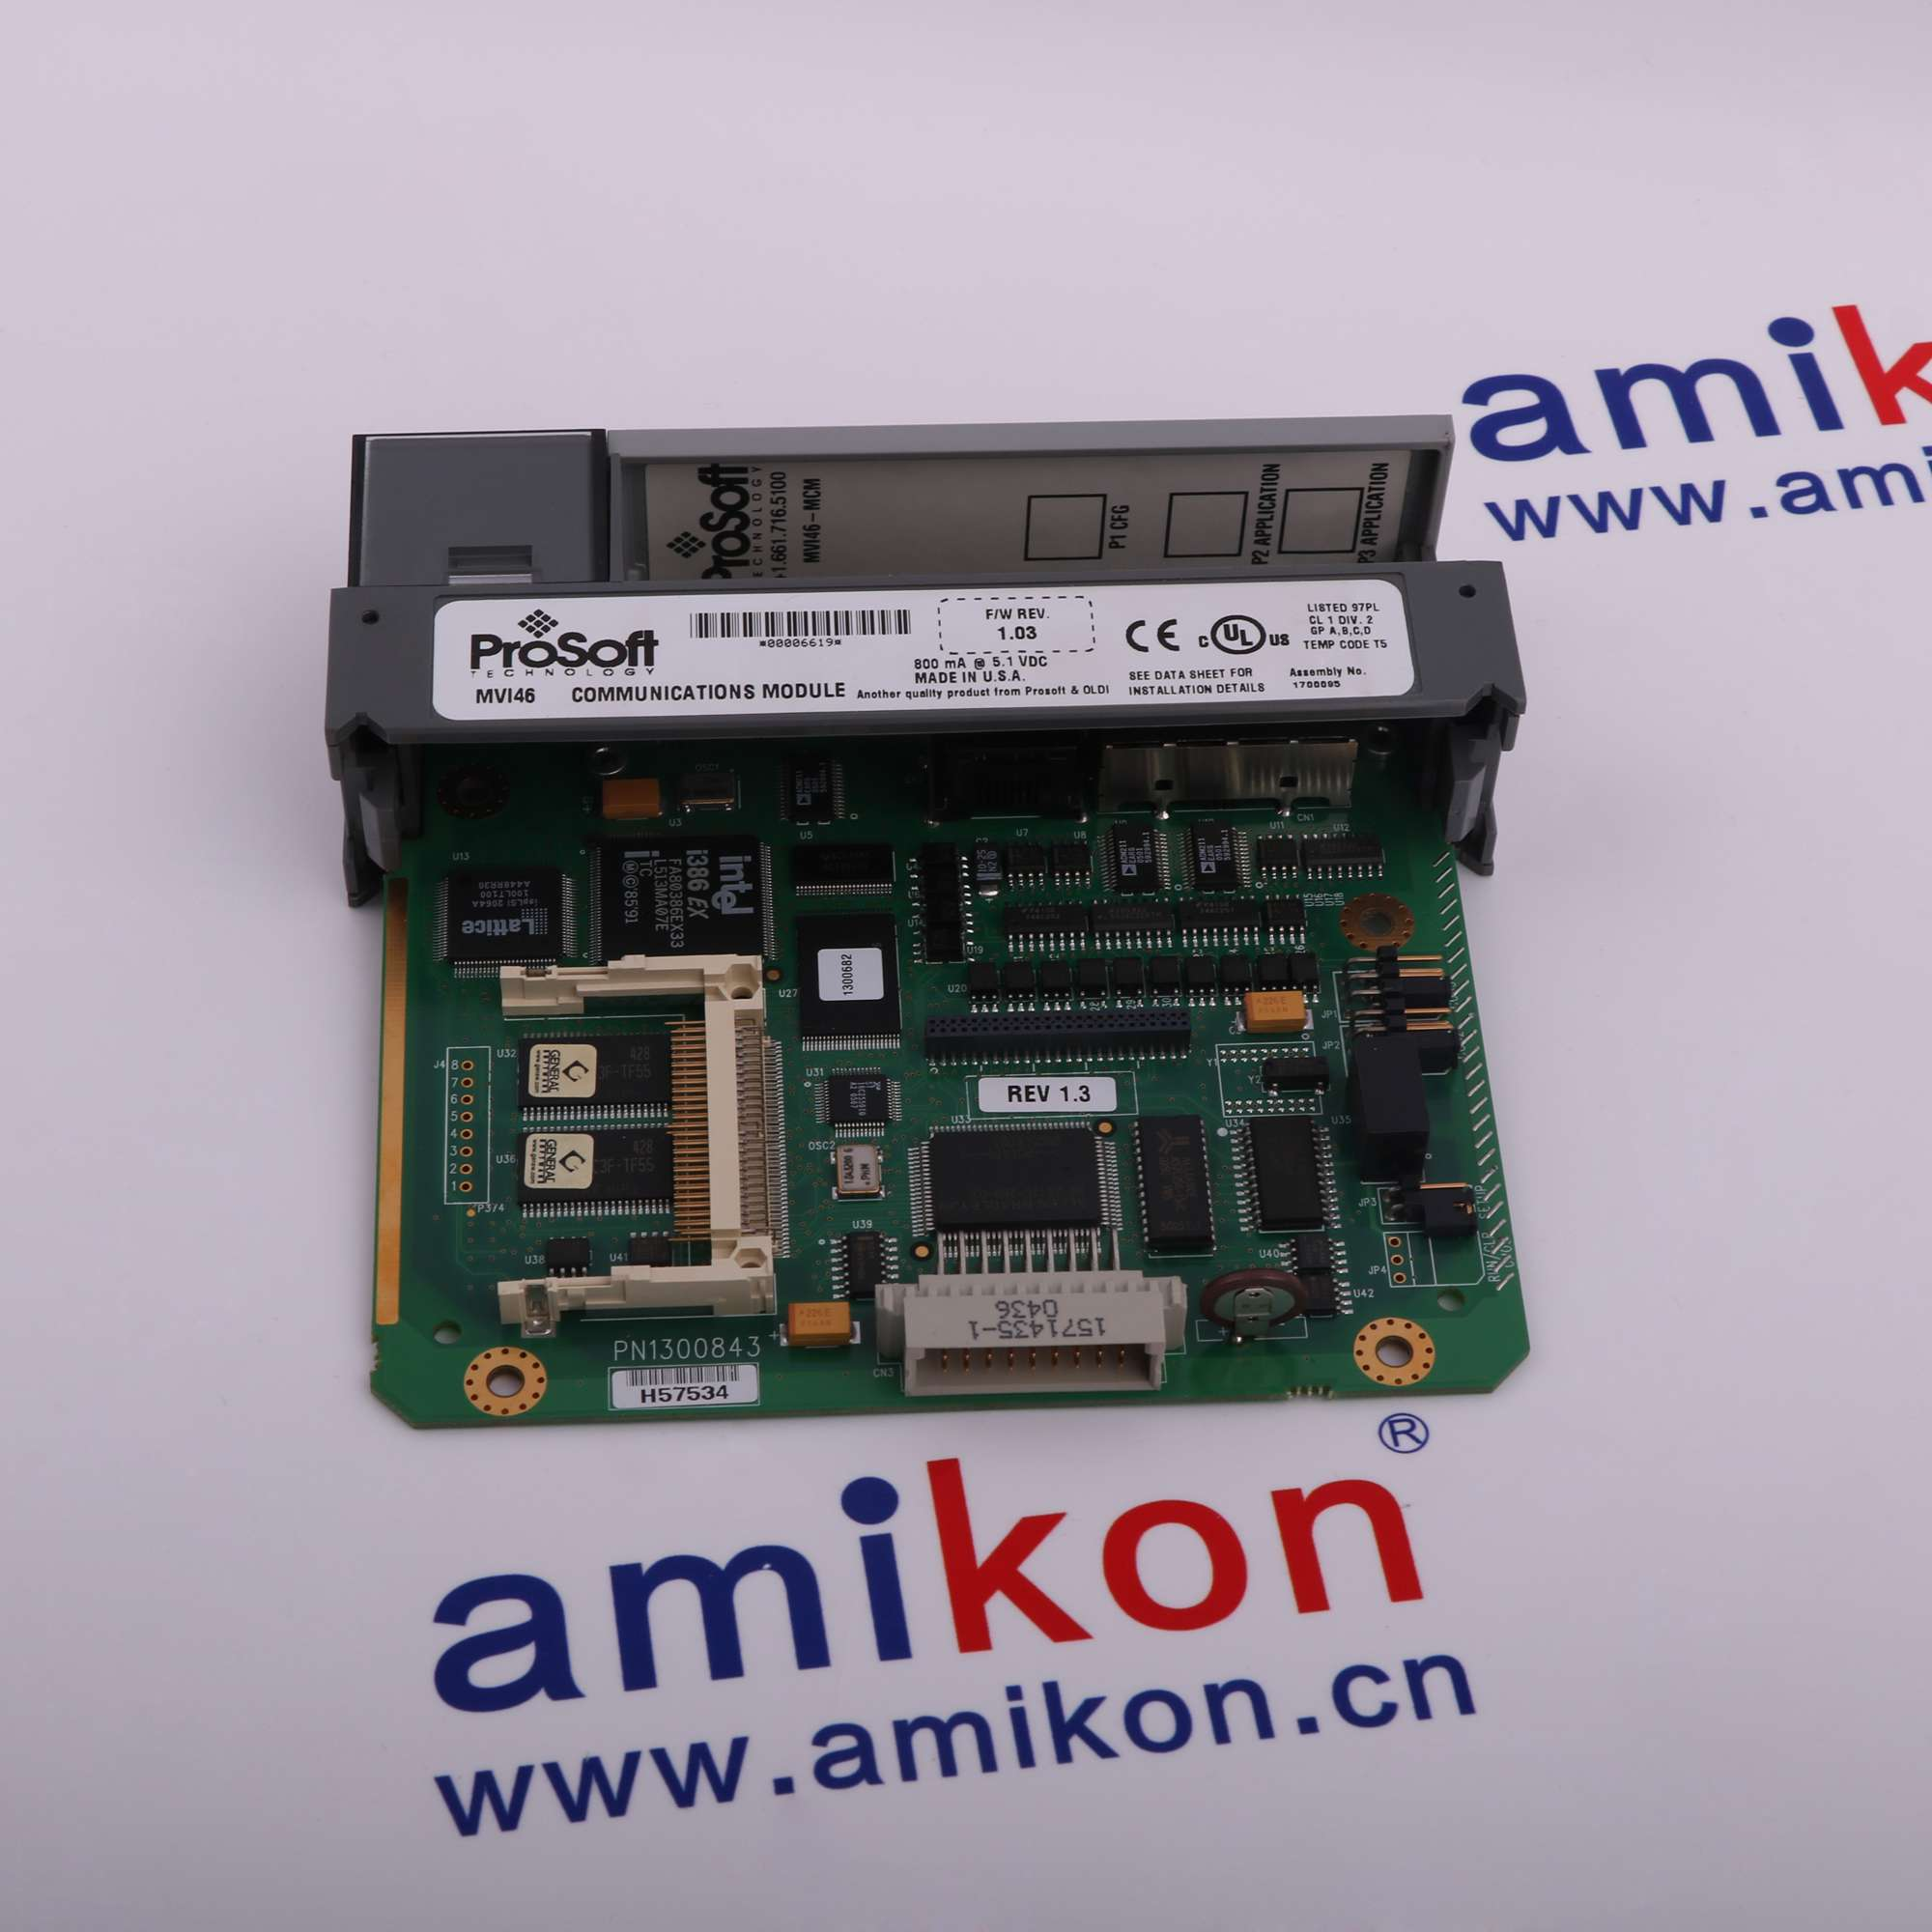 3805E	TRICONEX	TRICON	IN STOCK